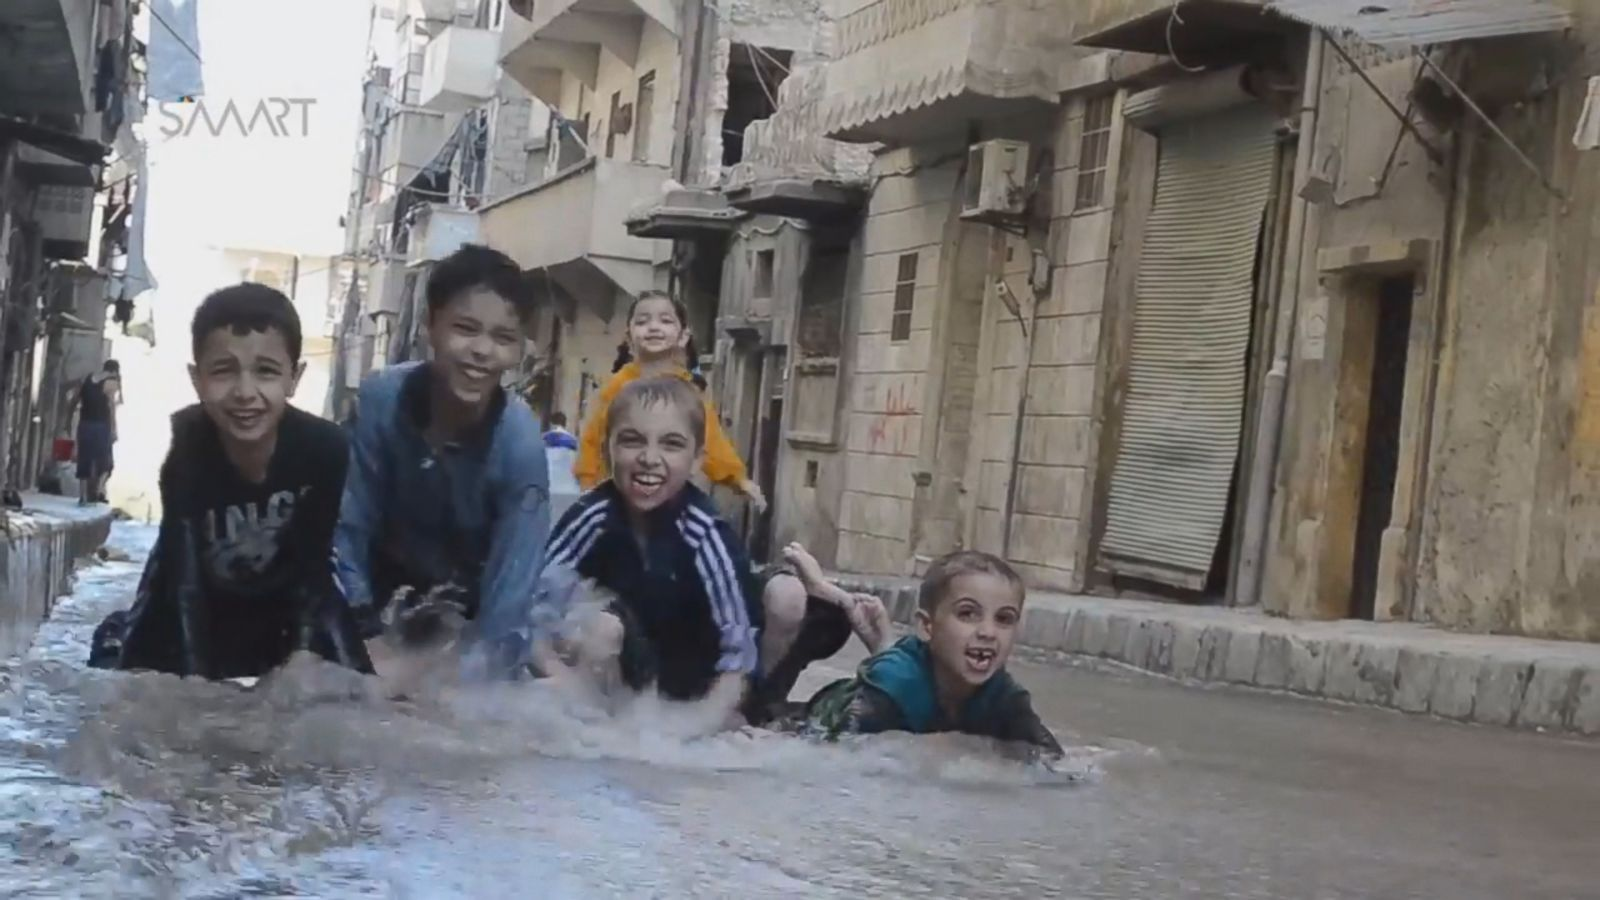 Aleppo children splashed about in water gushing down streets in the rebel-held neighborhood Mashhad on Thursday, Sept. 29, after airstrikes damaged a water main there.